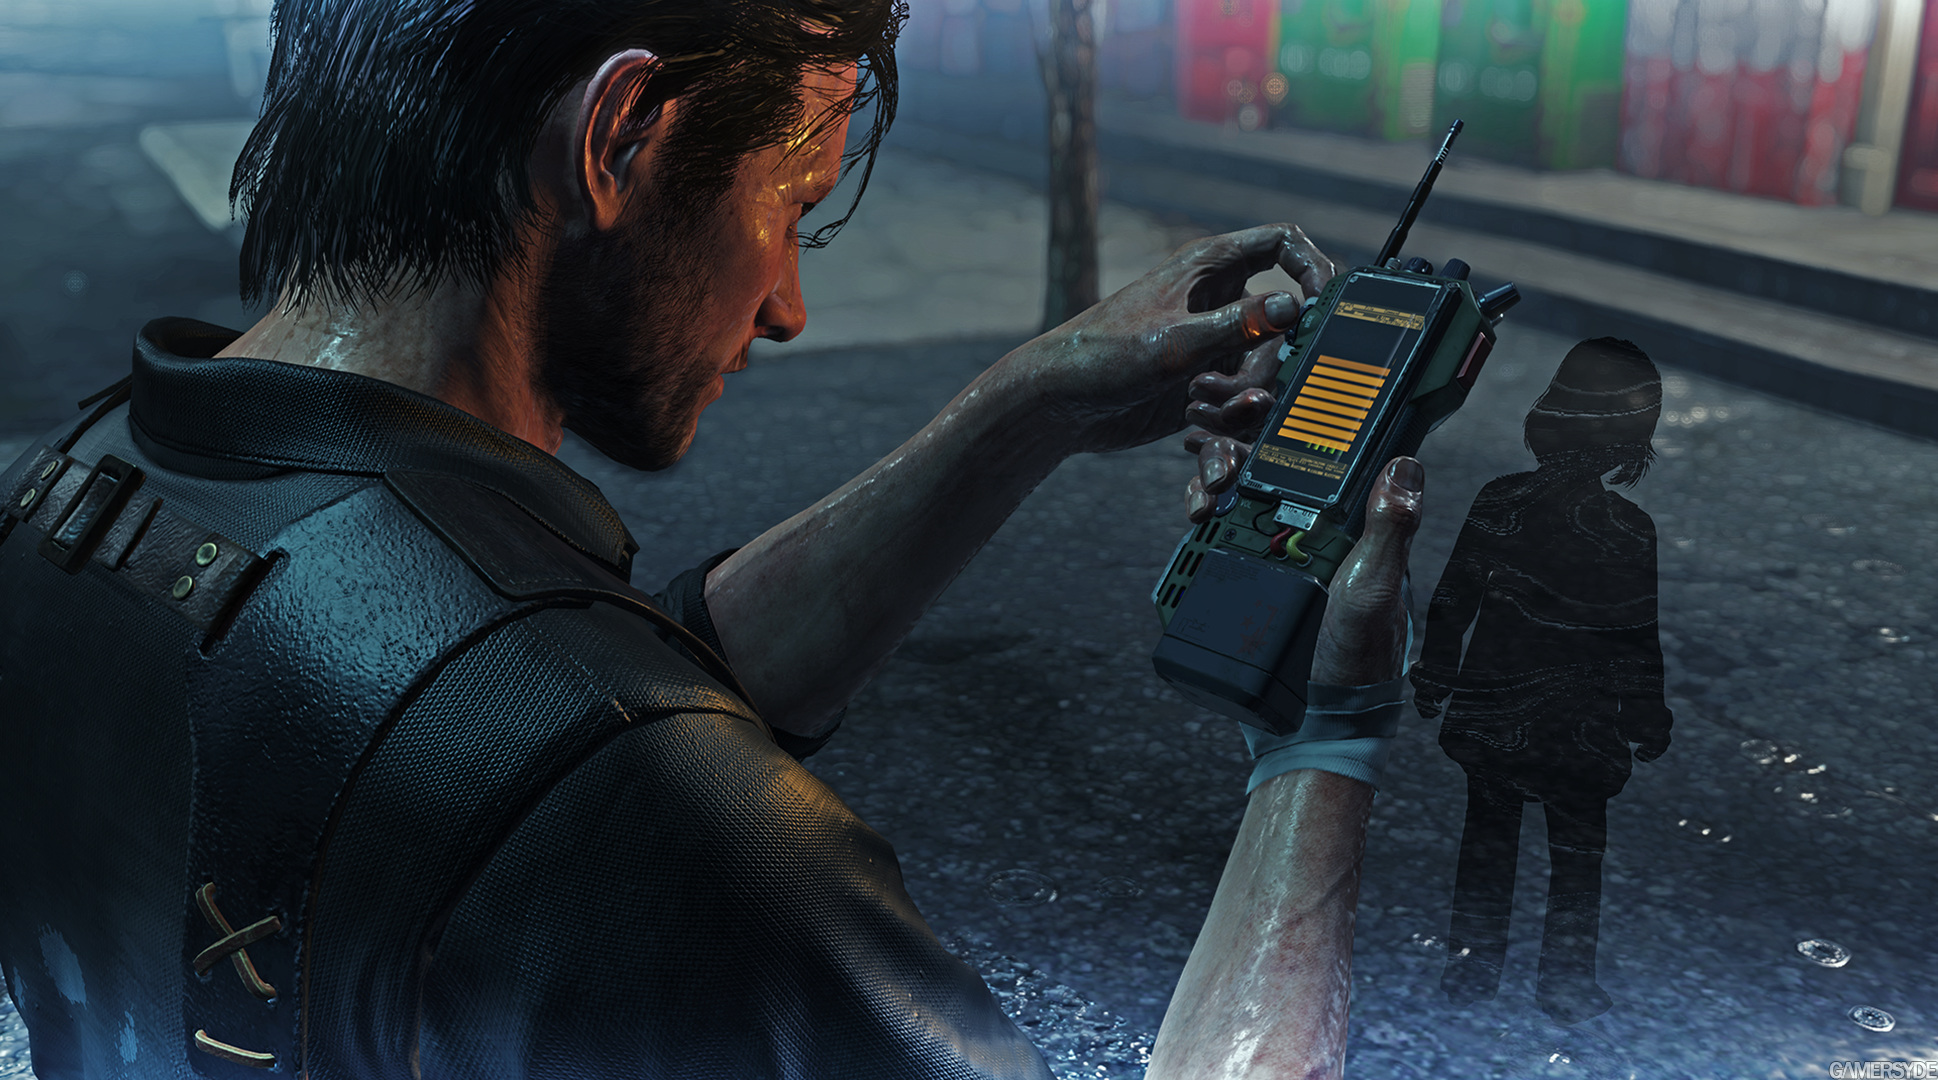 image_the_evil_within_2-35705-3886_0001.